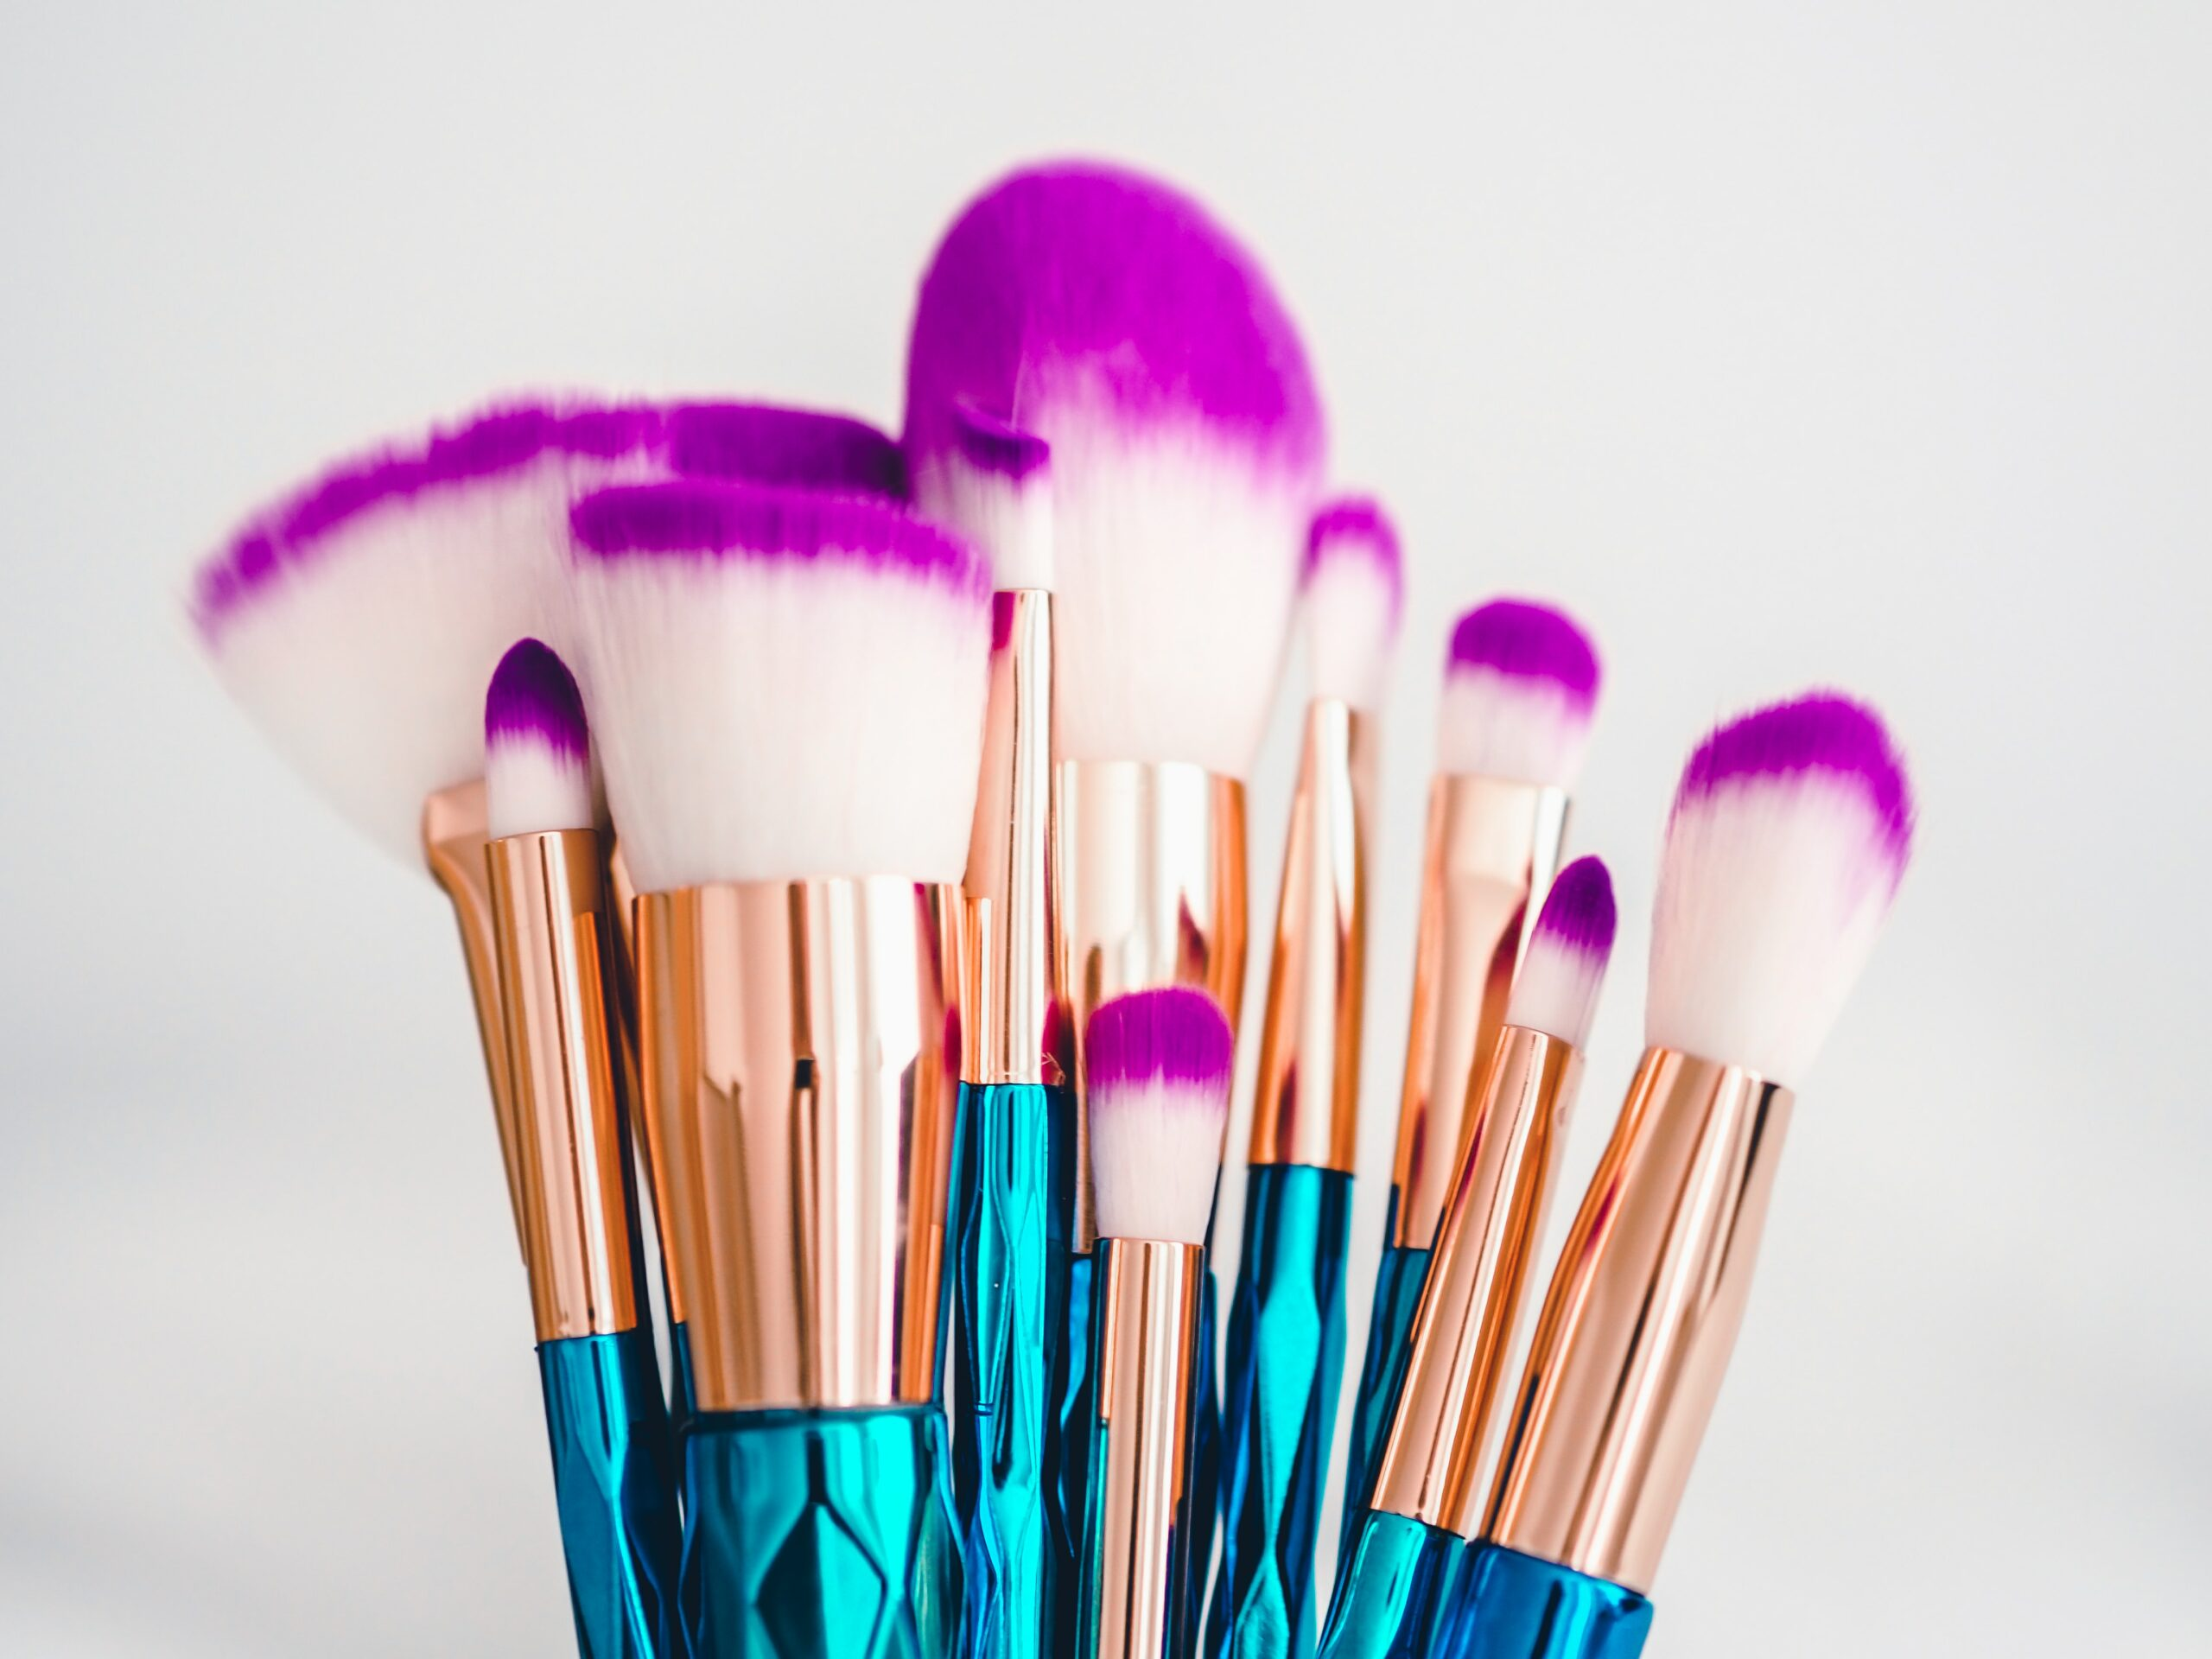 13 Best Makeup Brush Sets for a Flawless Face in 2021